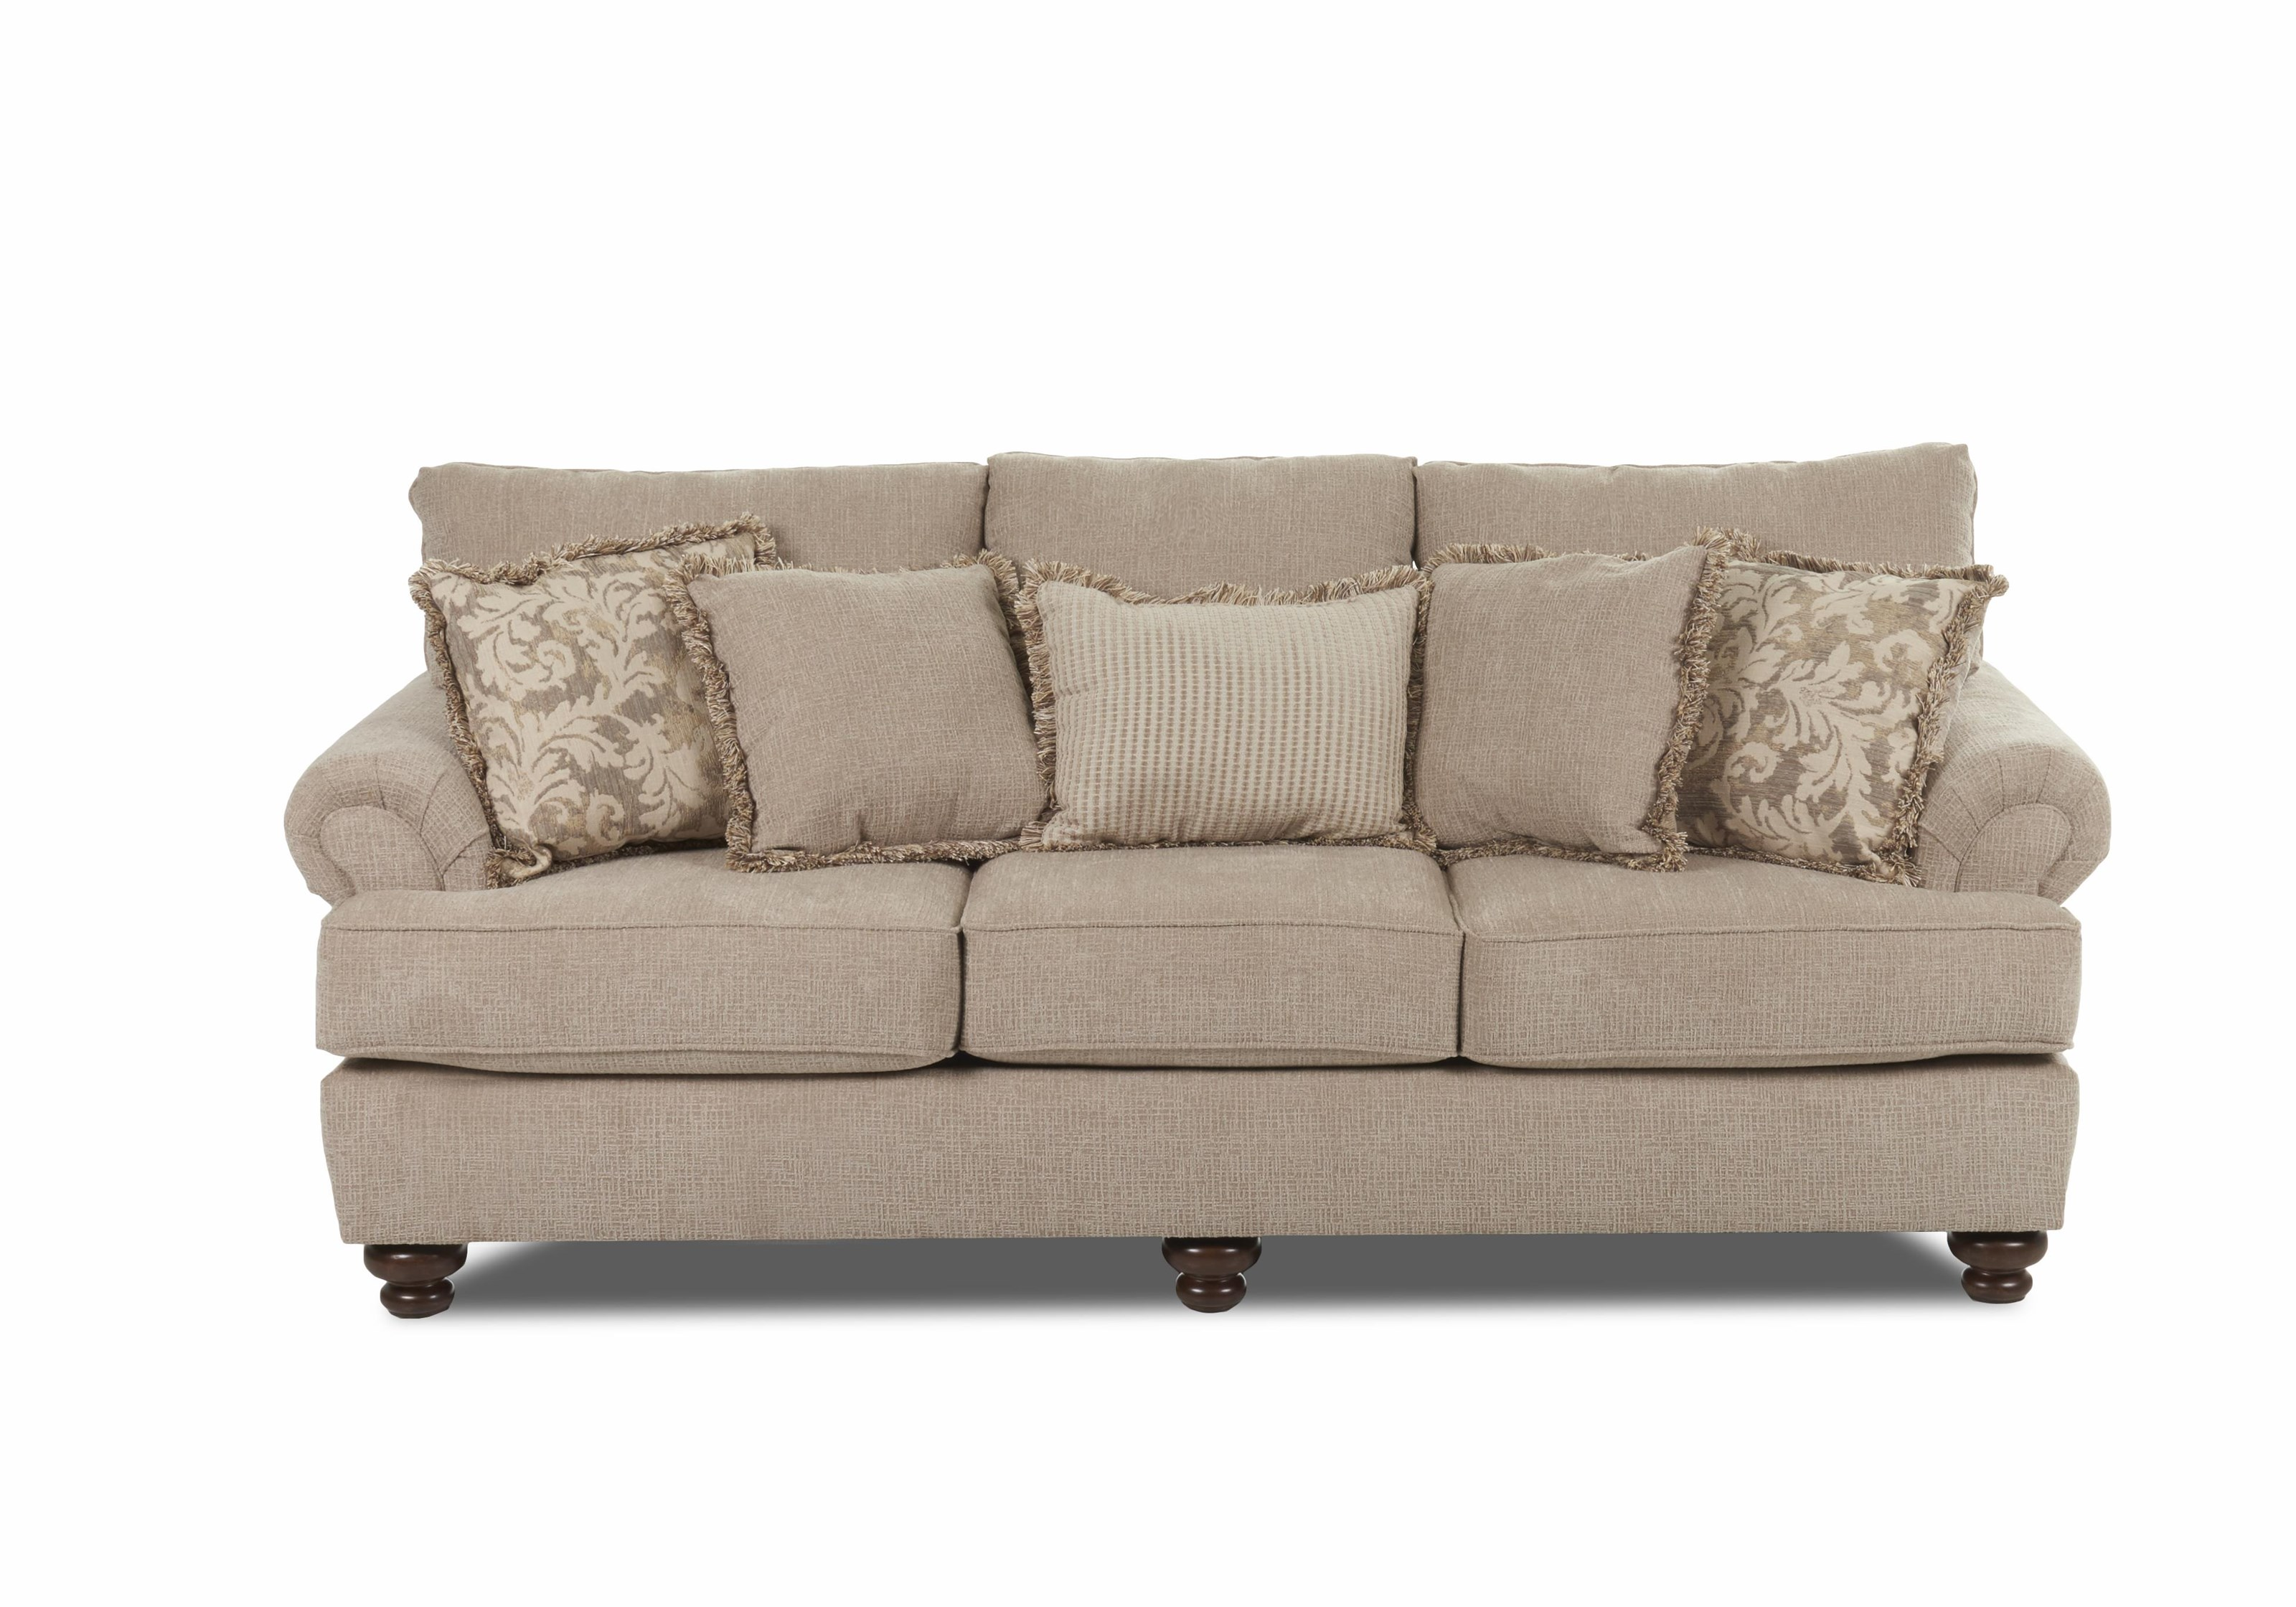 Klaussner Greenvale Traditional Stationary Sofa   Item Number: OK73500FS  Crisscross Putty